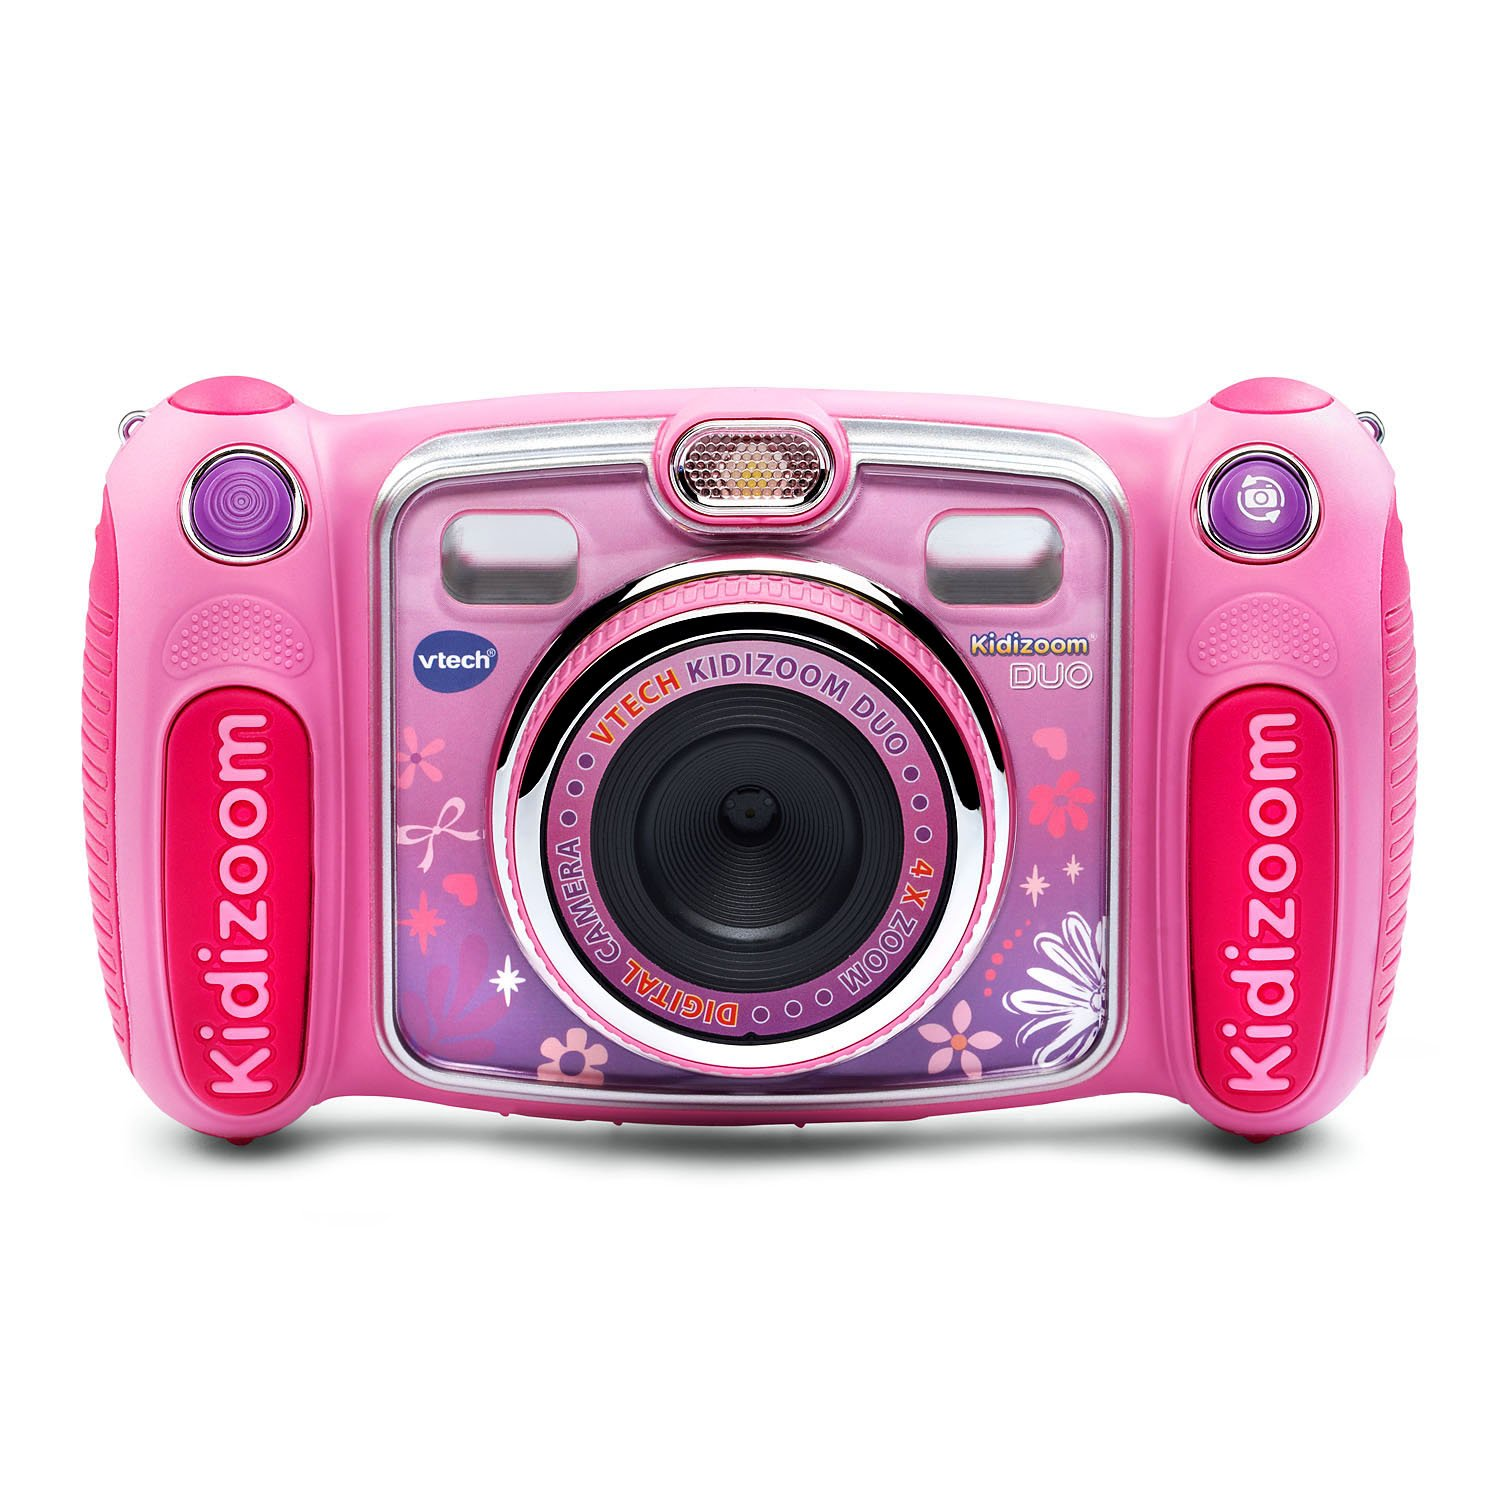 VTech Kidizoom Duo Selfie Camera, Amazon Exclusive, Pink by VTech